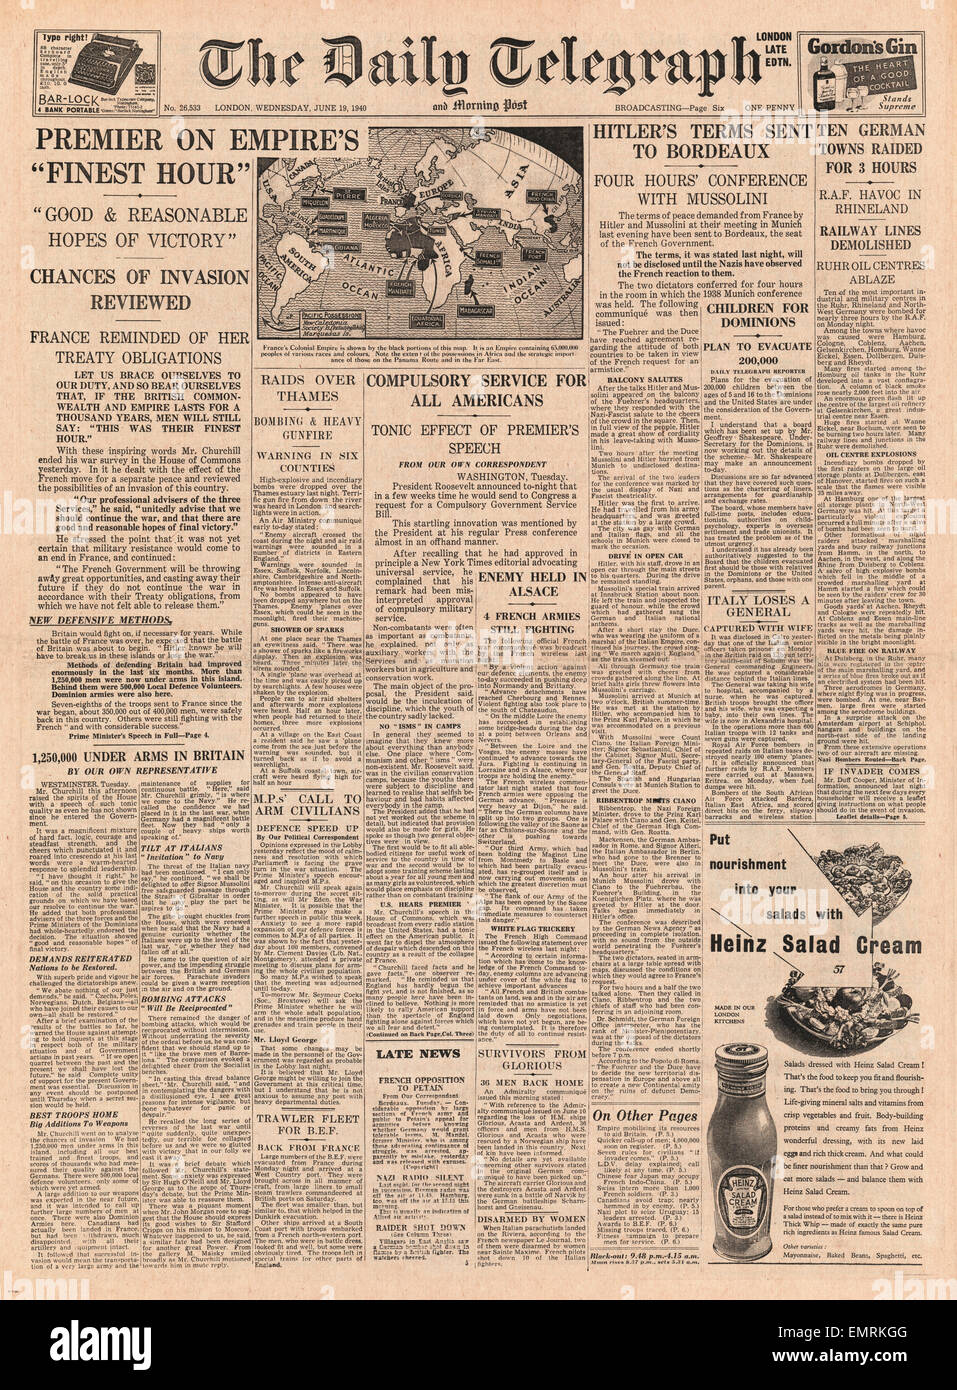 Genial 1940 Front Page Daily Telegraph Churchillu0027s U0027Finest Houru0027 Speech ...